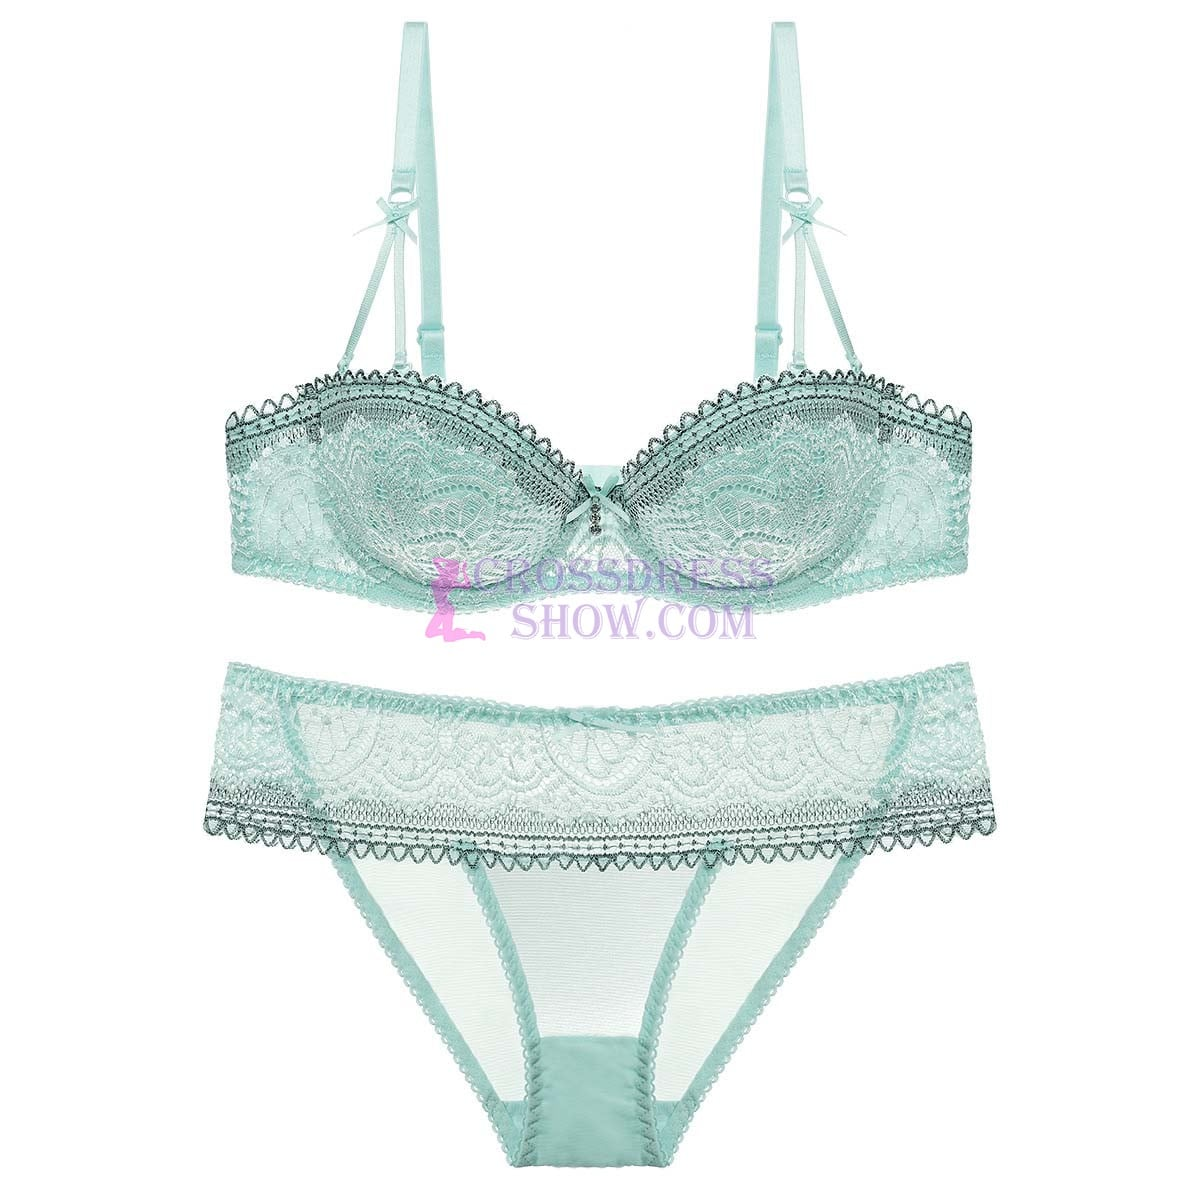 Transparent Women 's Push up Embroidery Bras Set Lace Lingerie Bra and Panties 1643